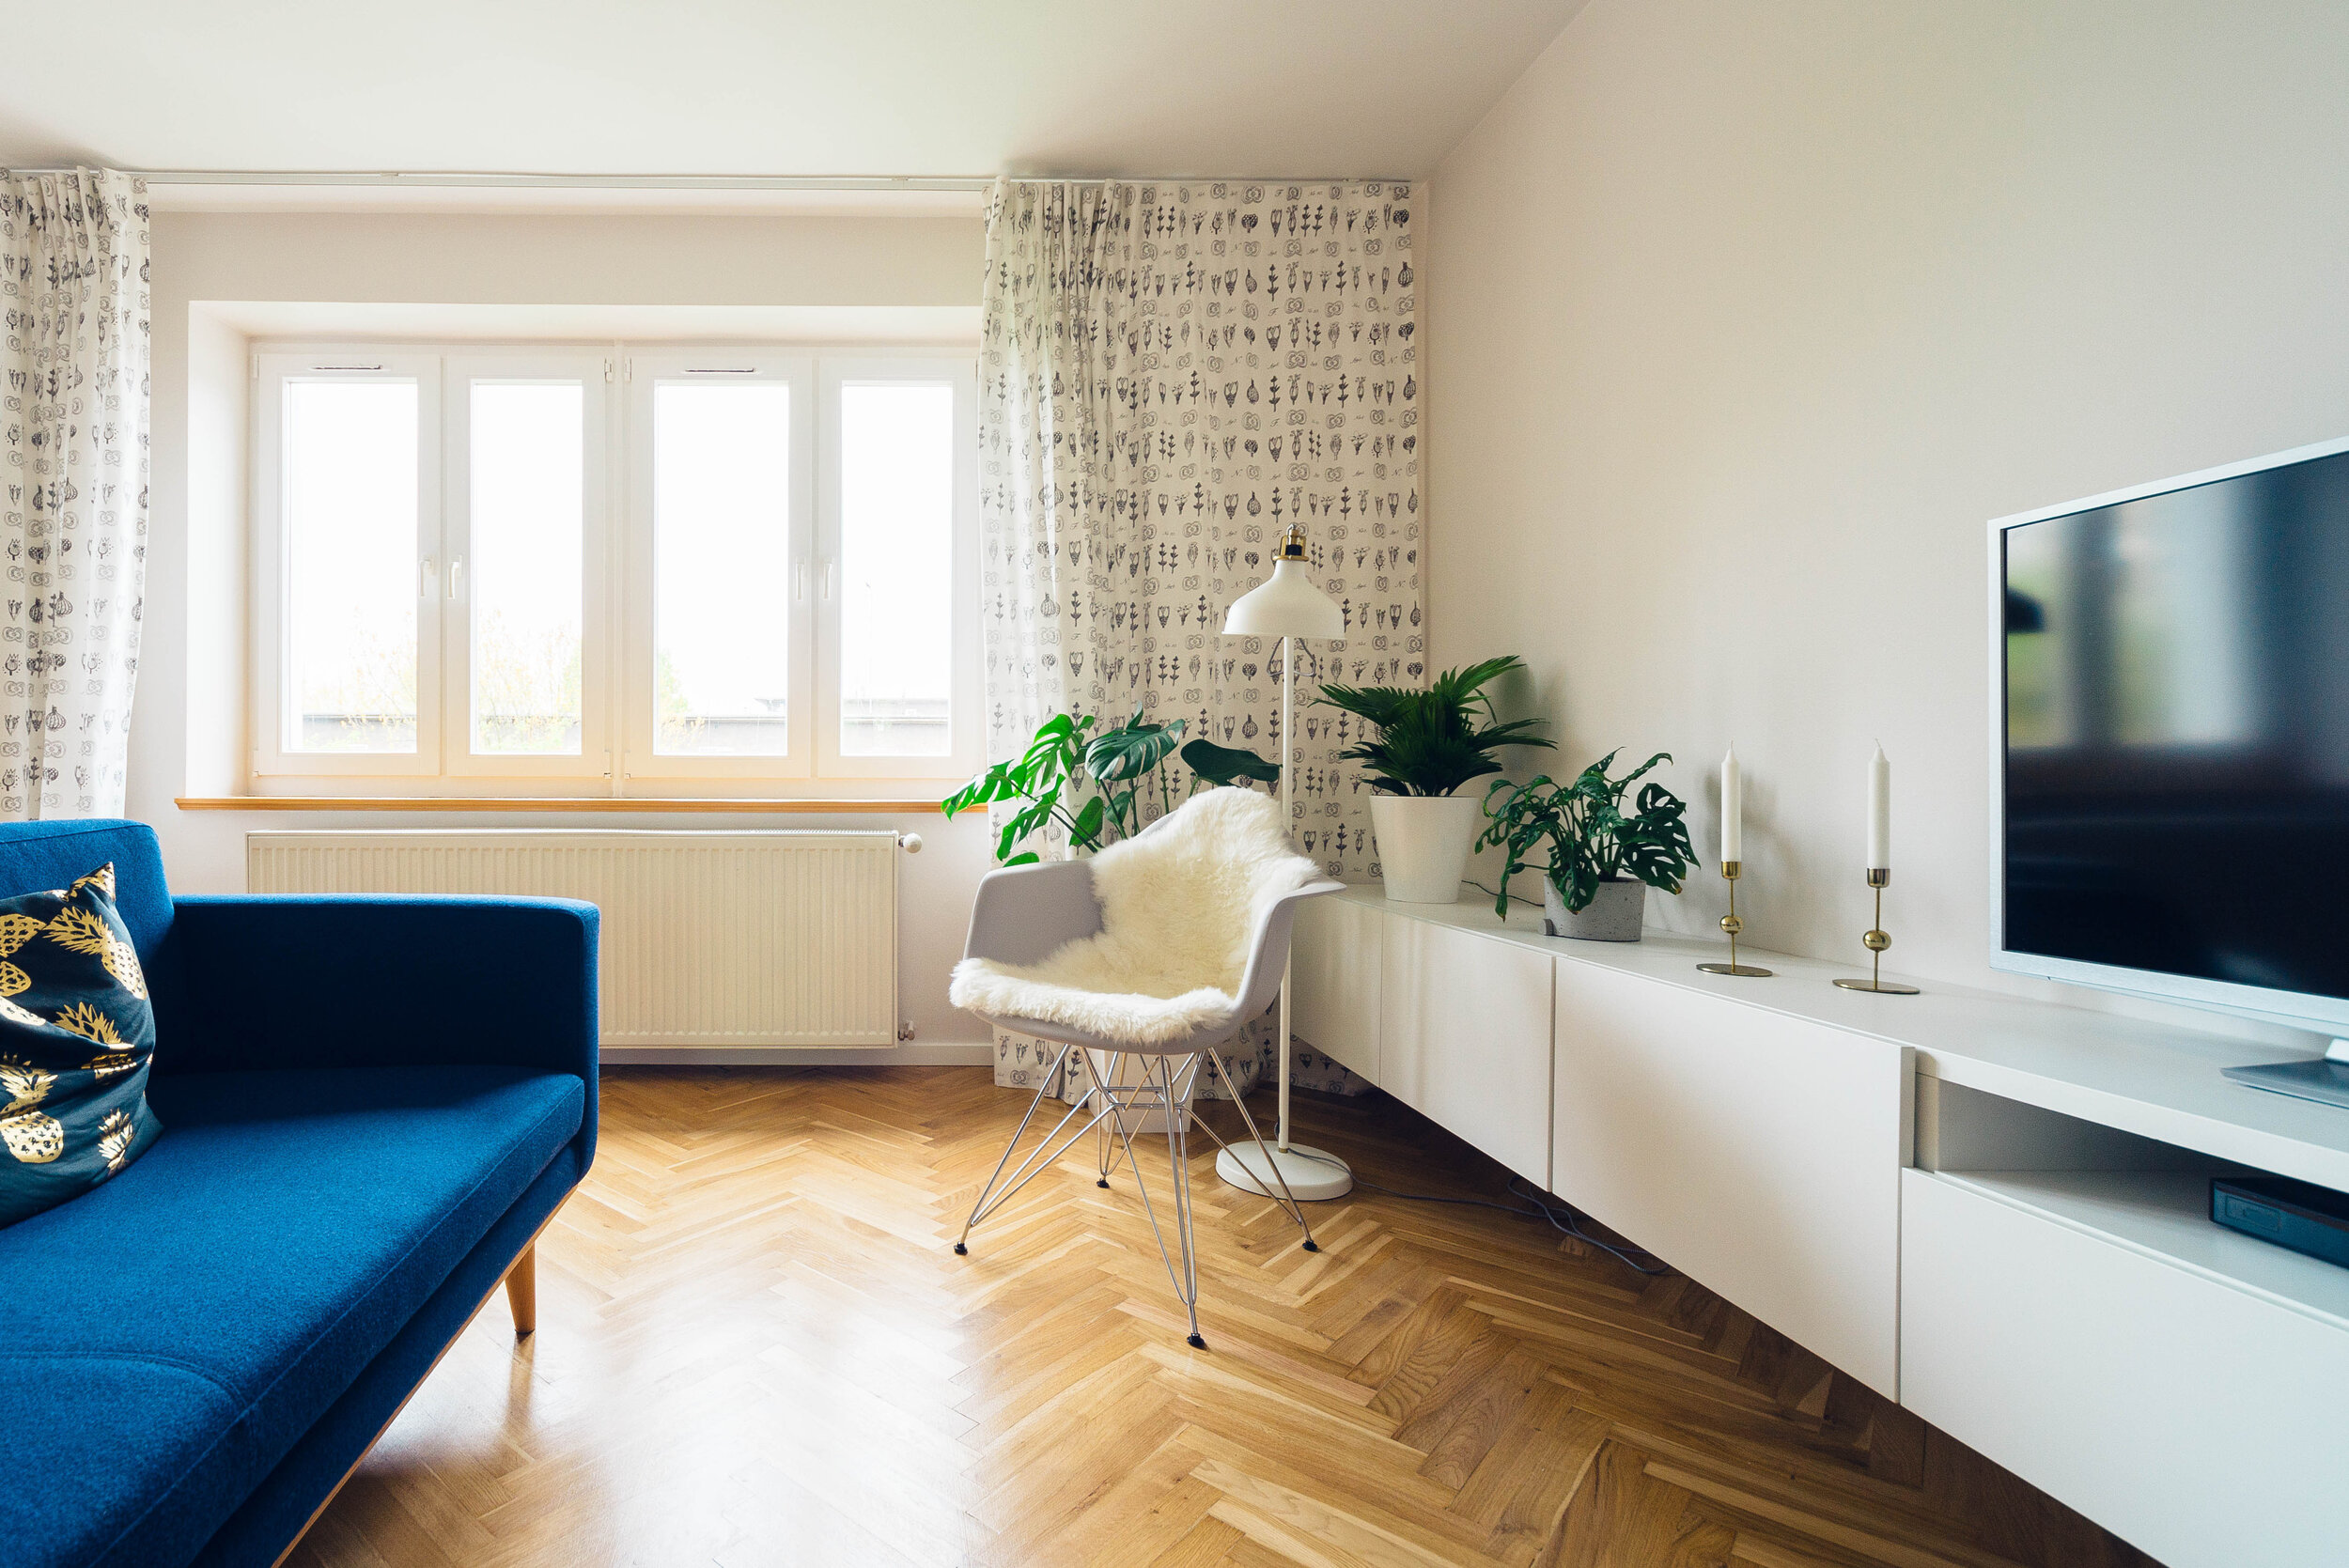 5 Tips to Selling a Home with Tenants | Lissette Ellerbe | LRB Design Studios |Virtual Home Staging